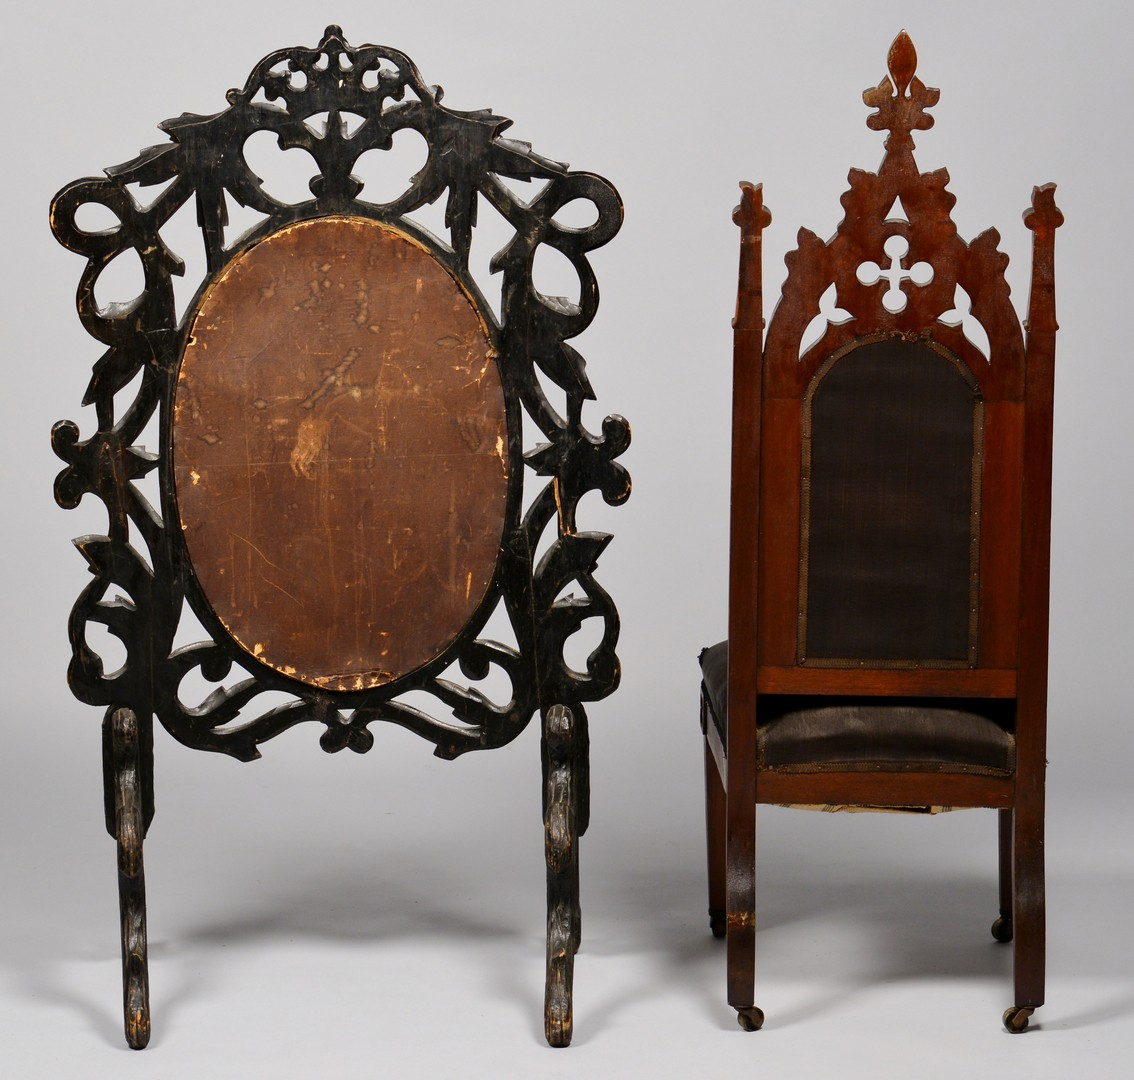 Lot 709: 2 American Gothic Furniture Items, Chair & Screen